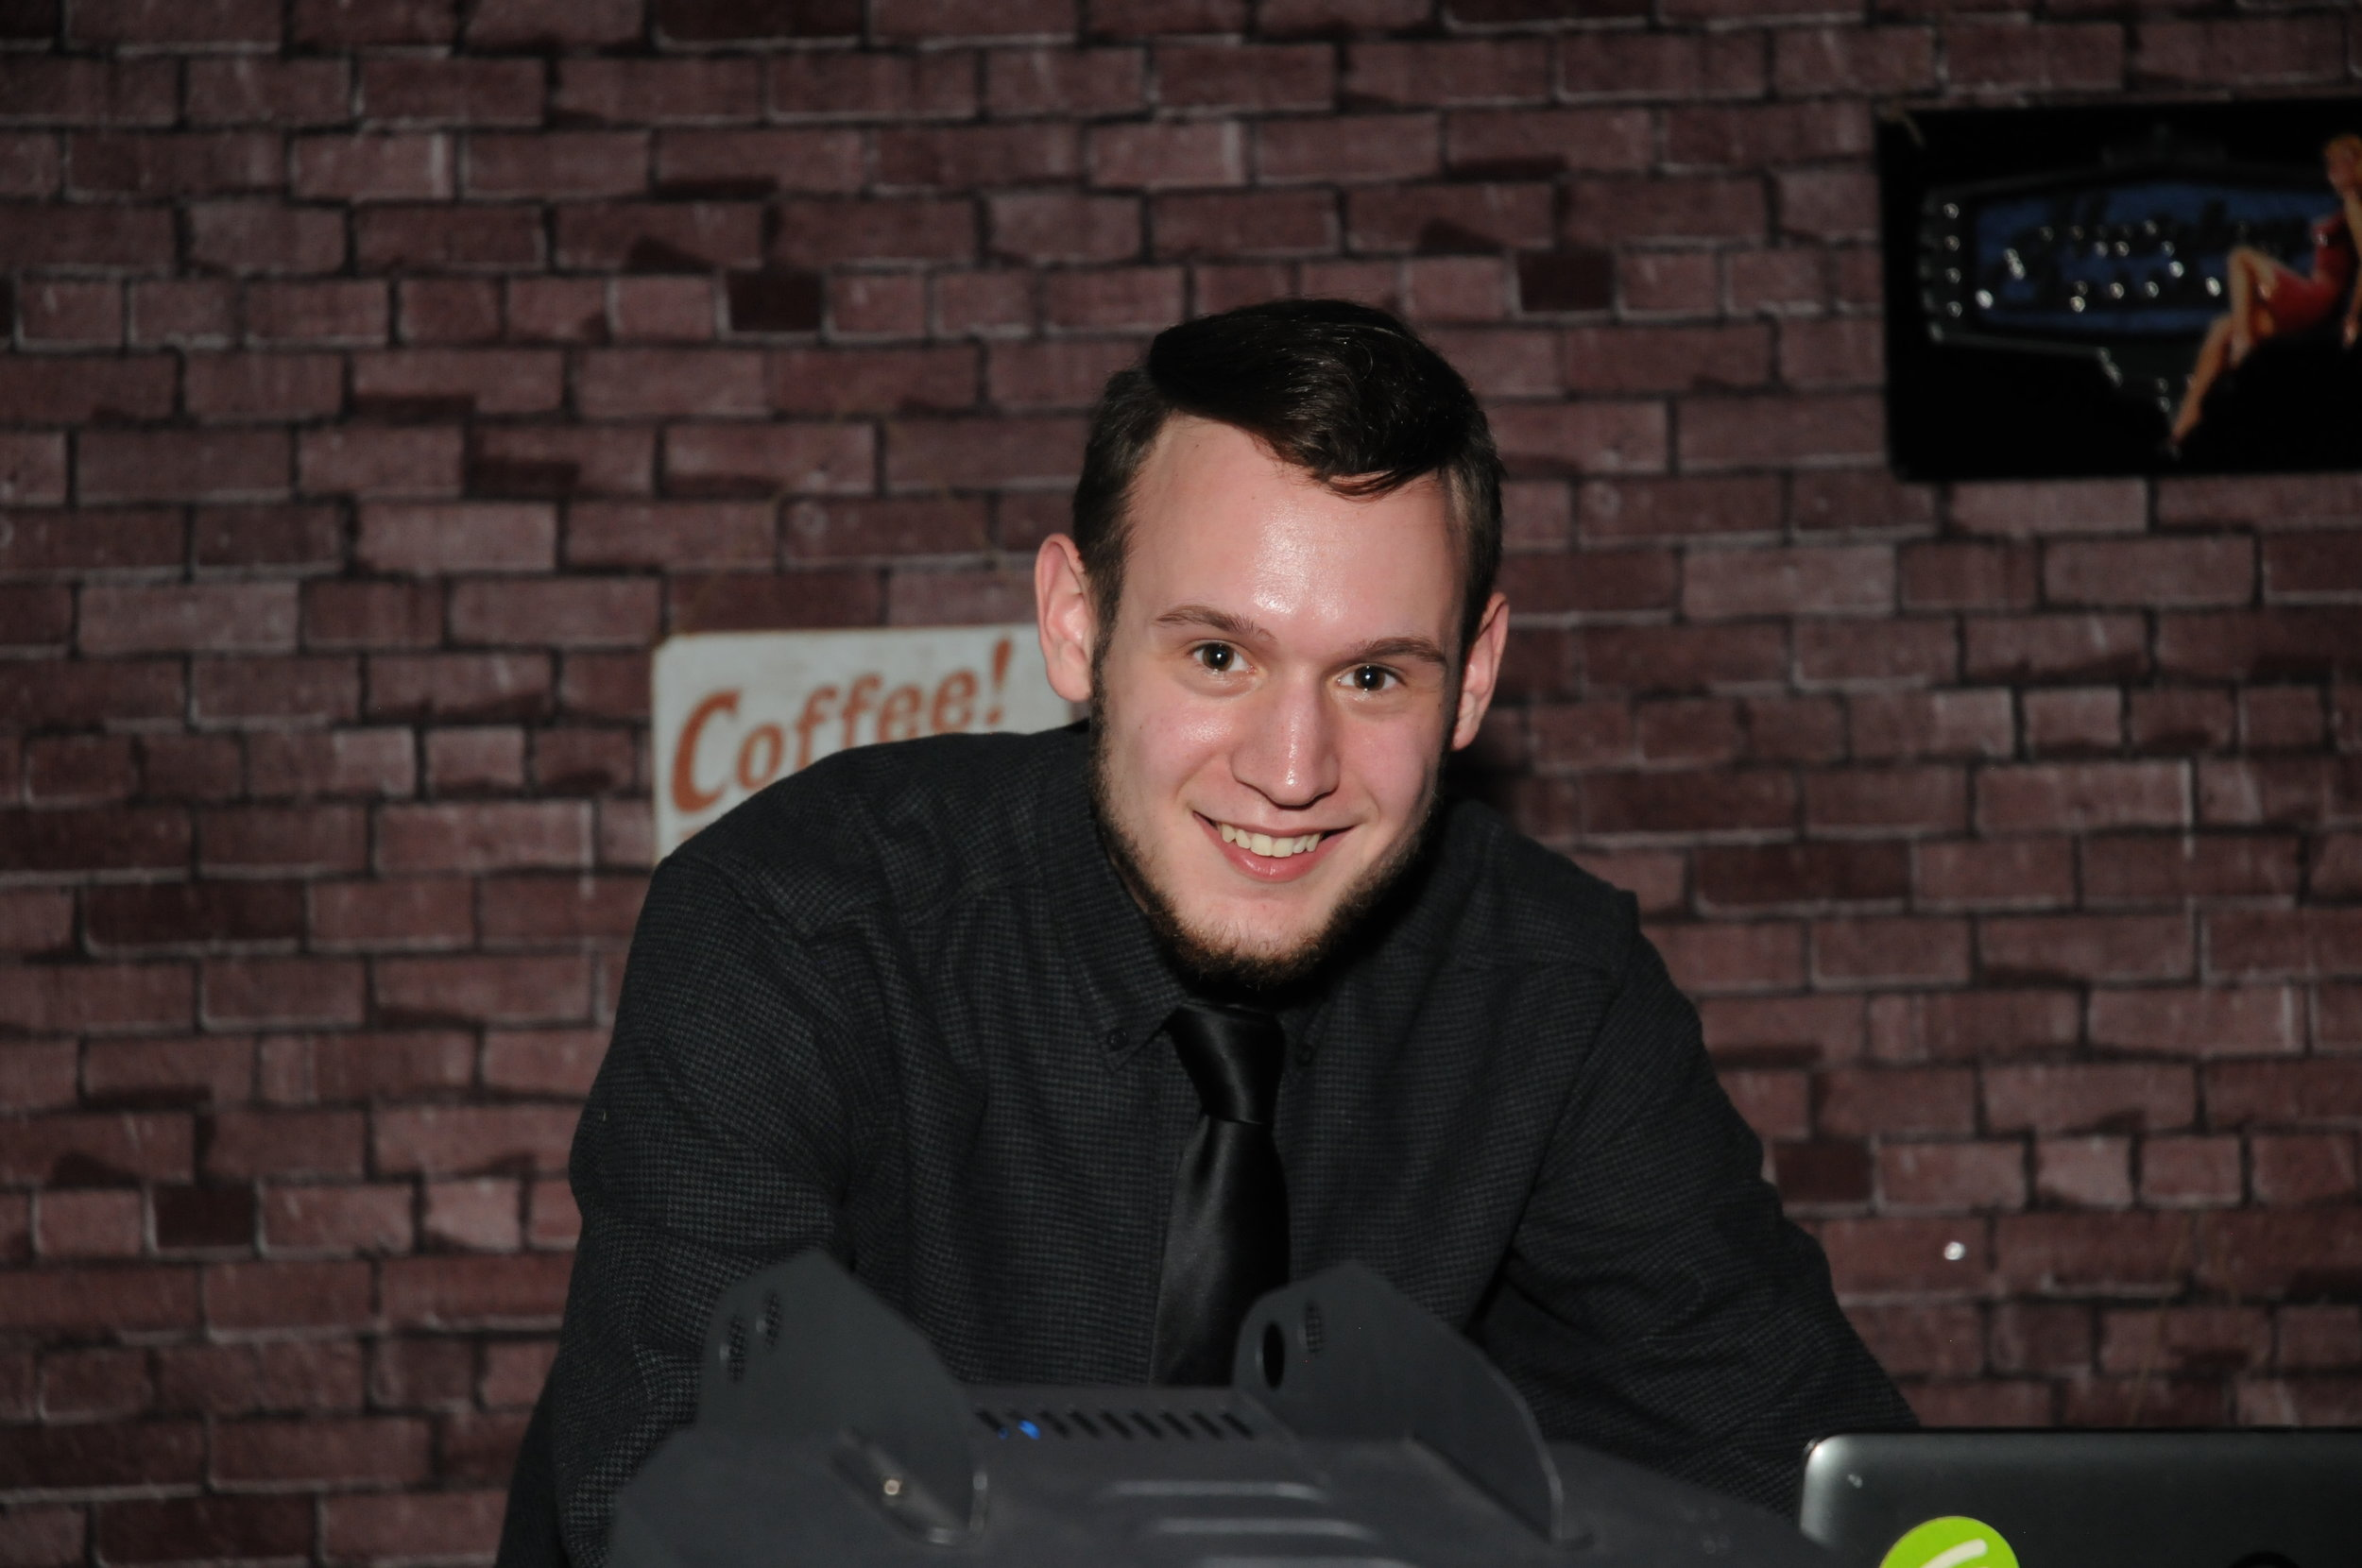 DJ Adam Moss    Hi I'm Adam. Thank you for taking the time to get to know a little bit about me. I was raised in the Greater Memphis Area and despite living all across the great state of Tennessee I am proud to call Memphis my home. I discovered my passion for live sound while working the catering business in 2010, since then I have been blessed to work in many different venues with many different skill sets required of me. I believe your special event should be catered to you (pun intended) in every aspect and hope to make your event special with a smile and a sense of humour.